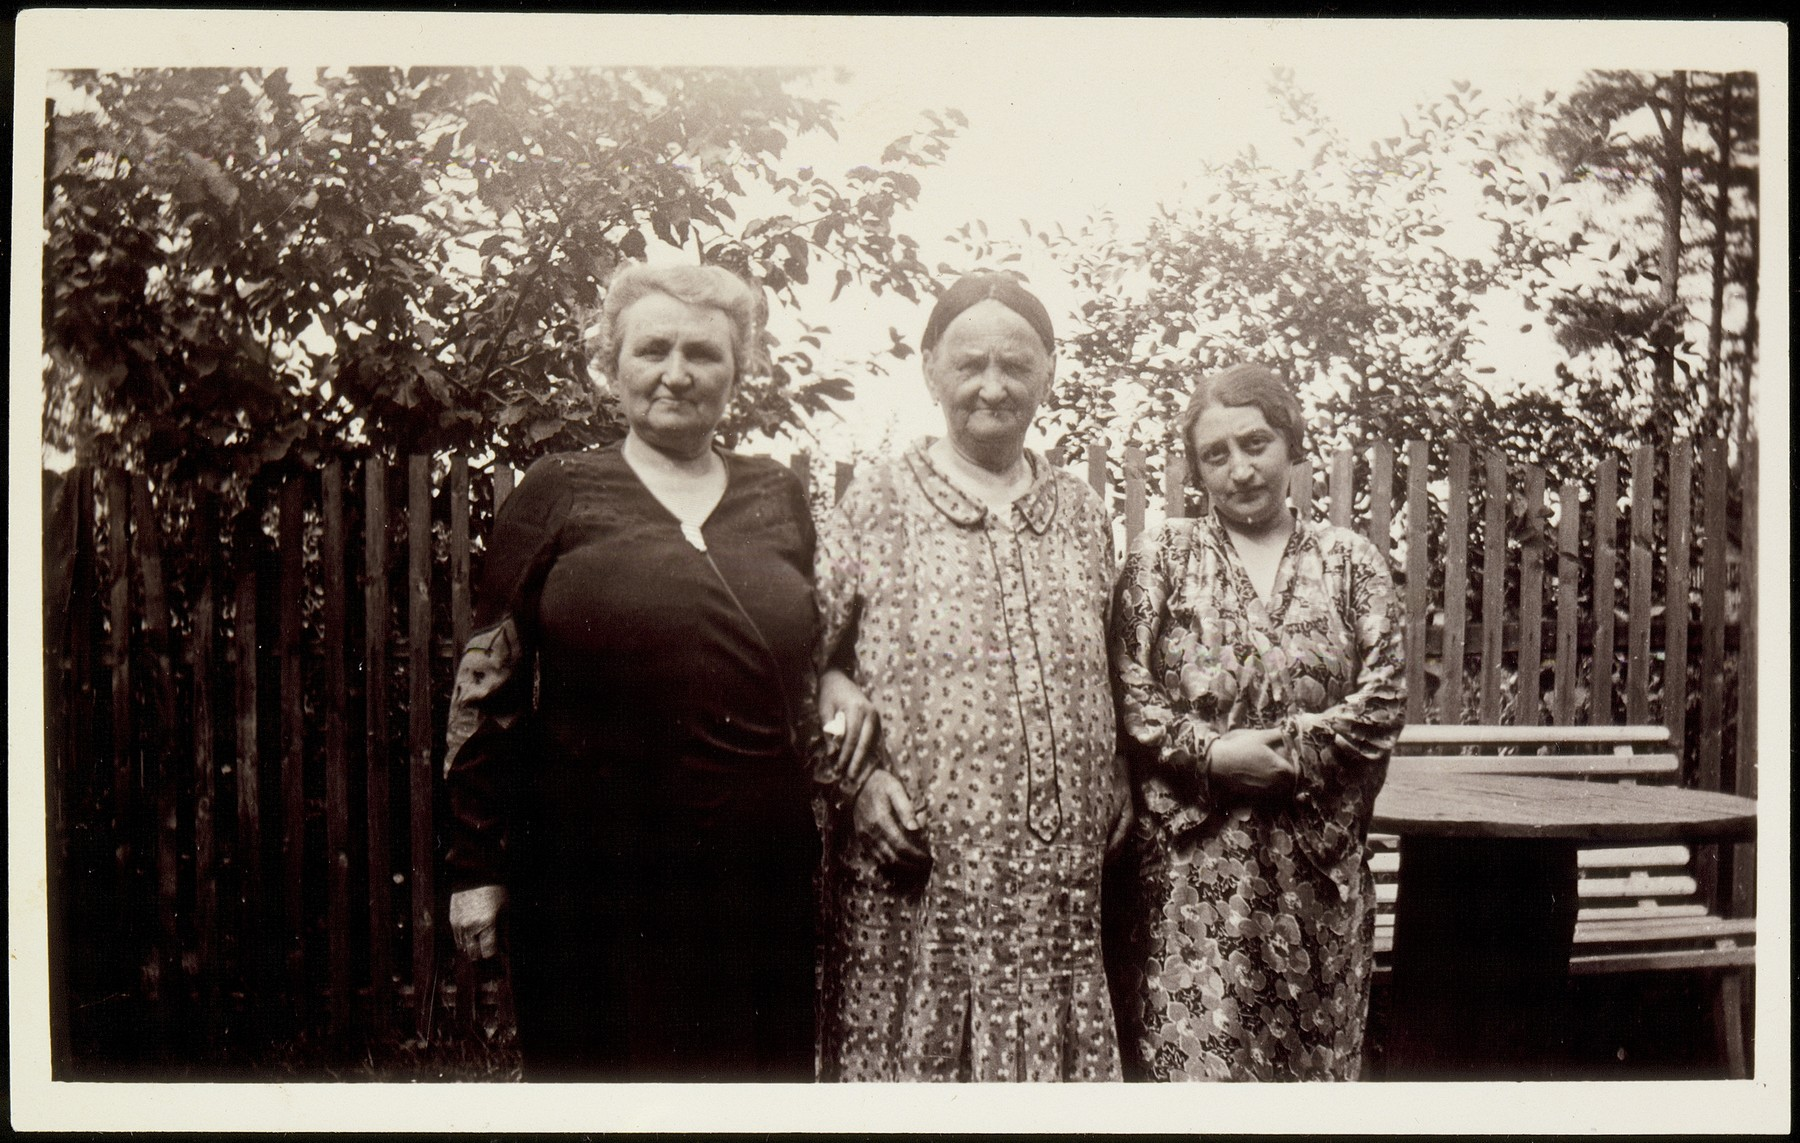 Annie Vishubski Foster (left)  poses with her mother, Feige Virshubski (center) and sister-in-law Lizzie Lapidus Virshubski while on a visit from America.